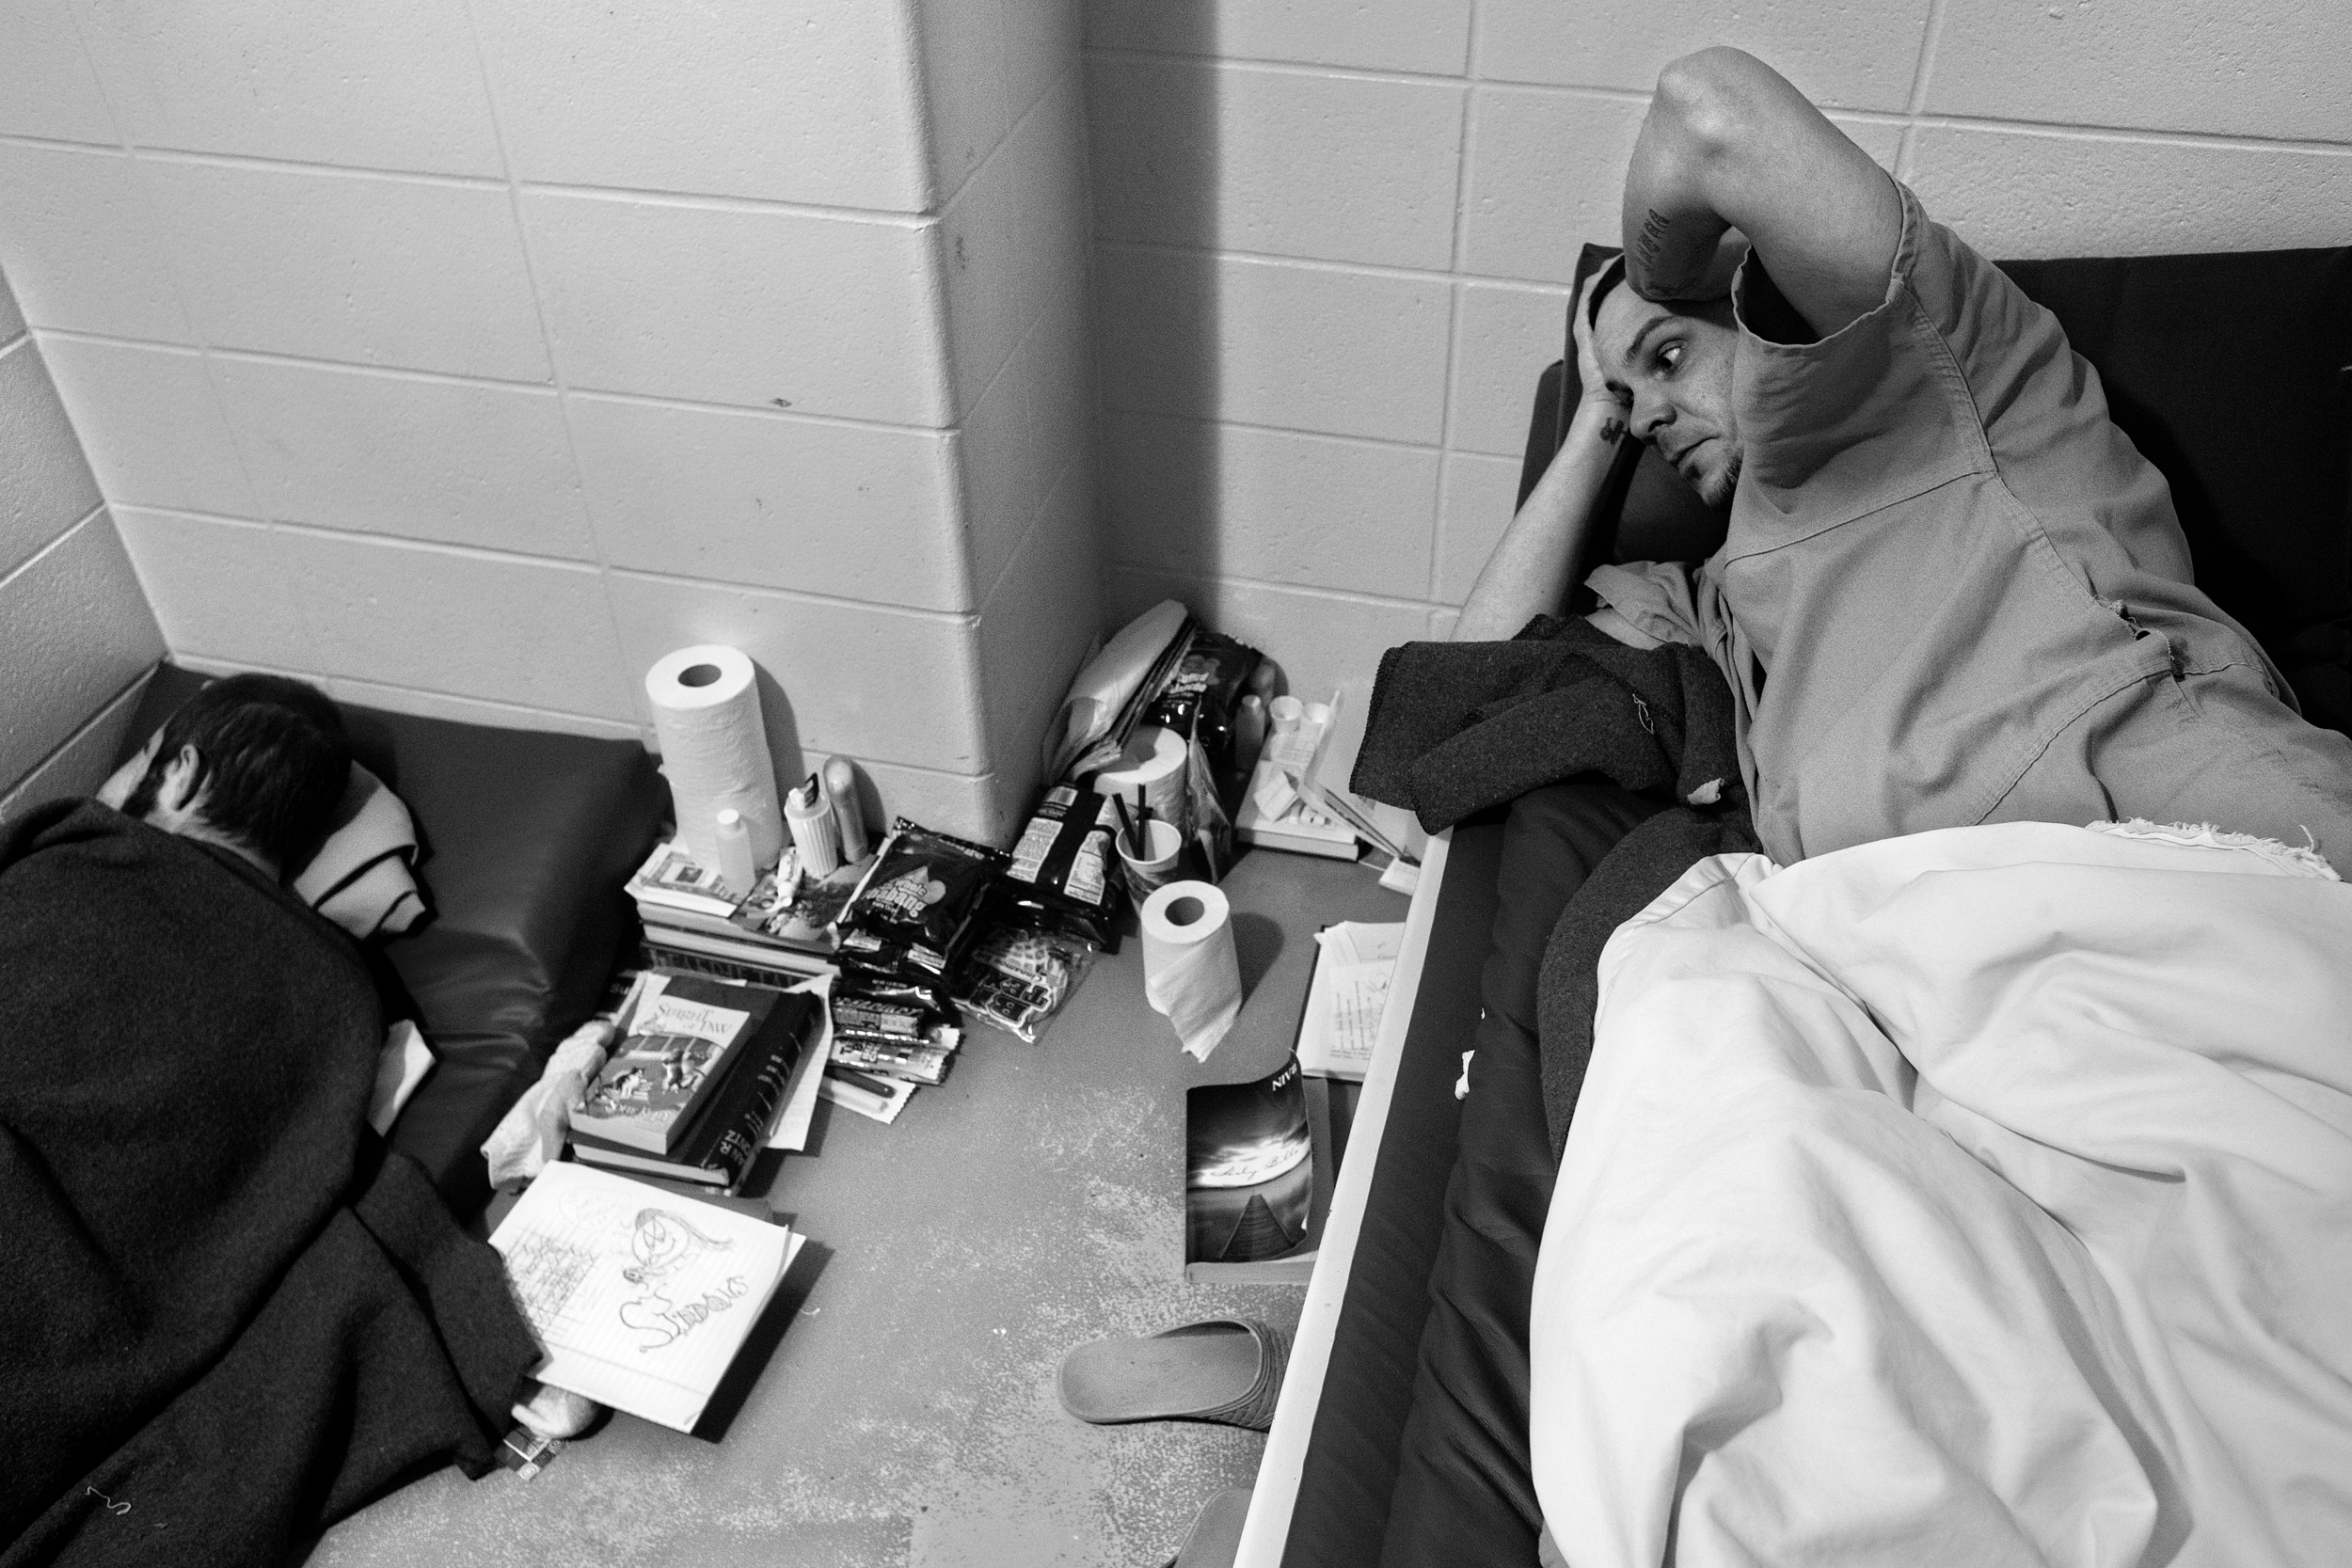 """Paul rests in his cell at the Dubois County Security Center where he was held for three months on felony theft charges before being transferred to a state mental health facility. Despite the fear of physical harm at Paul's hand, Lynda has mixed feelings about his incarceration. """"I don't like seeing him sit in jail,"""" she said. """"But at least I can sleep and at least I can watch TV and at least I can do what I want and I don't have to worry that he's hiding behind some closet door ready to kill me."""""""